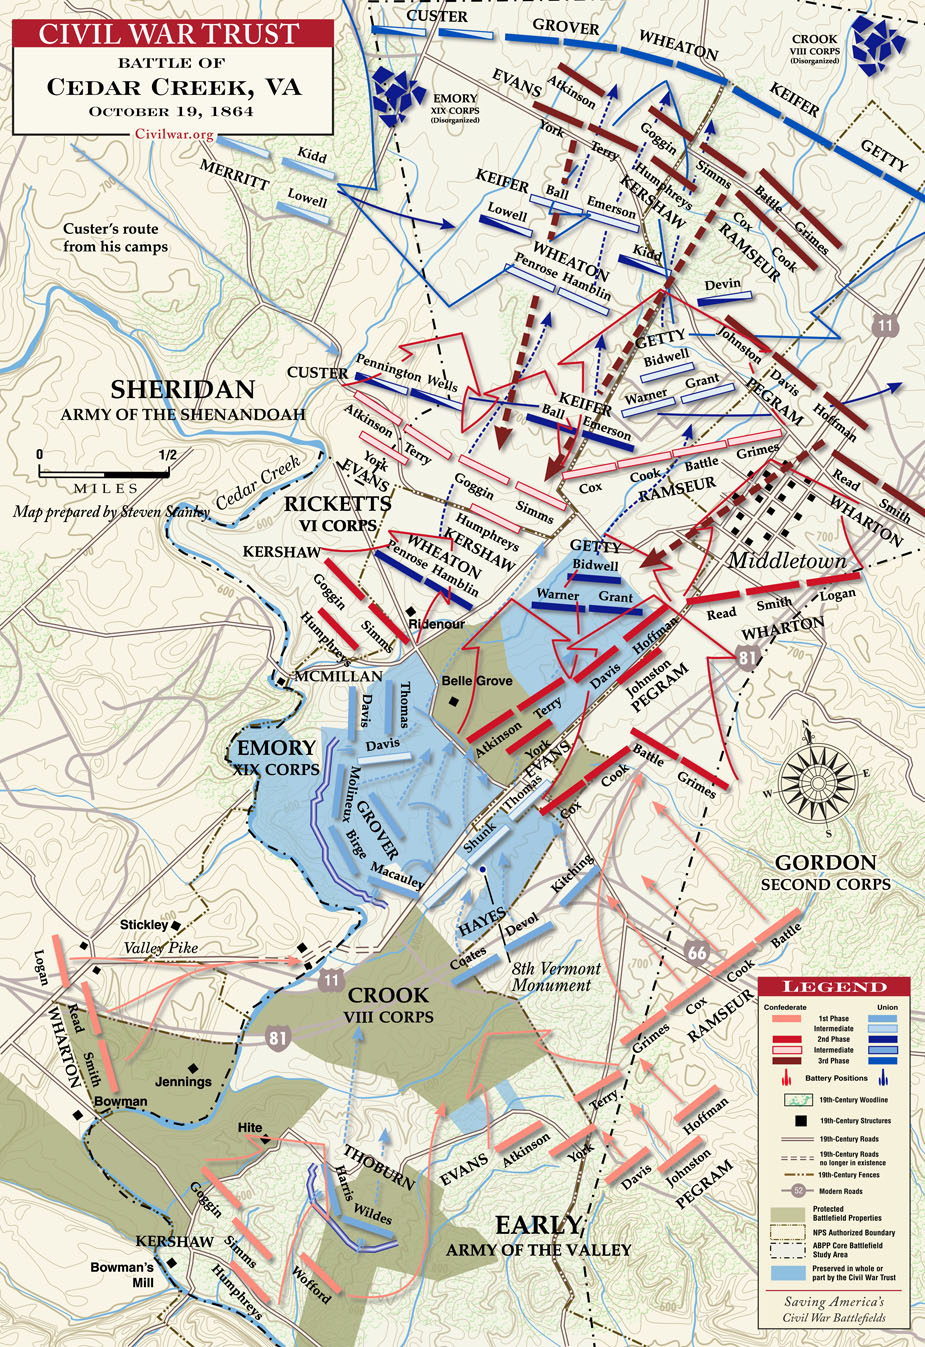 Battle of Cedar Creek Battlefield Map.jpg